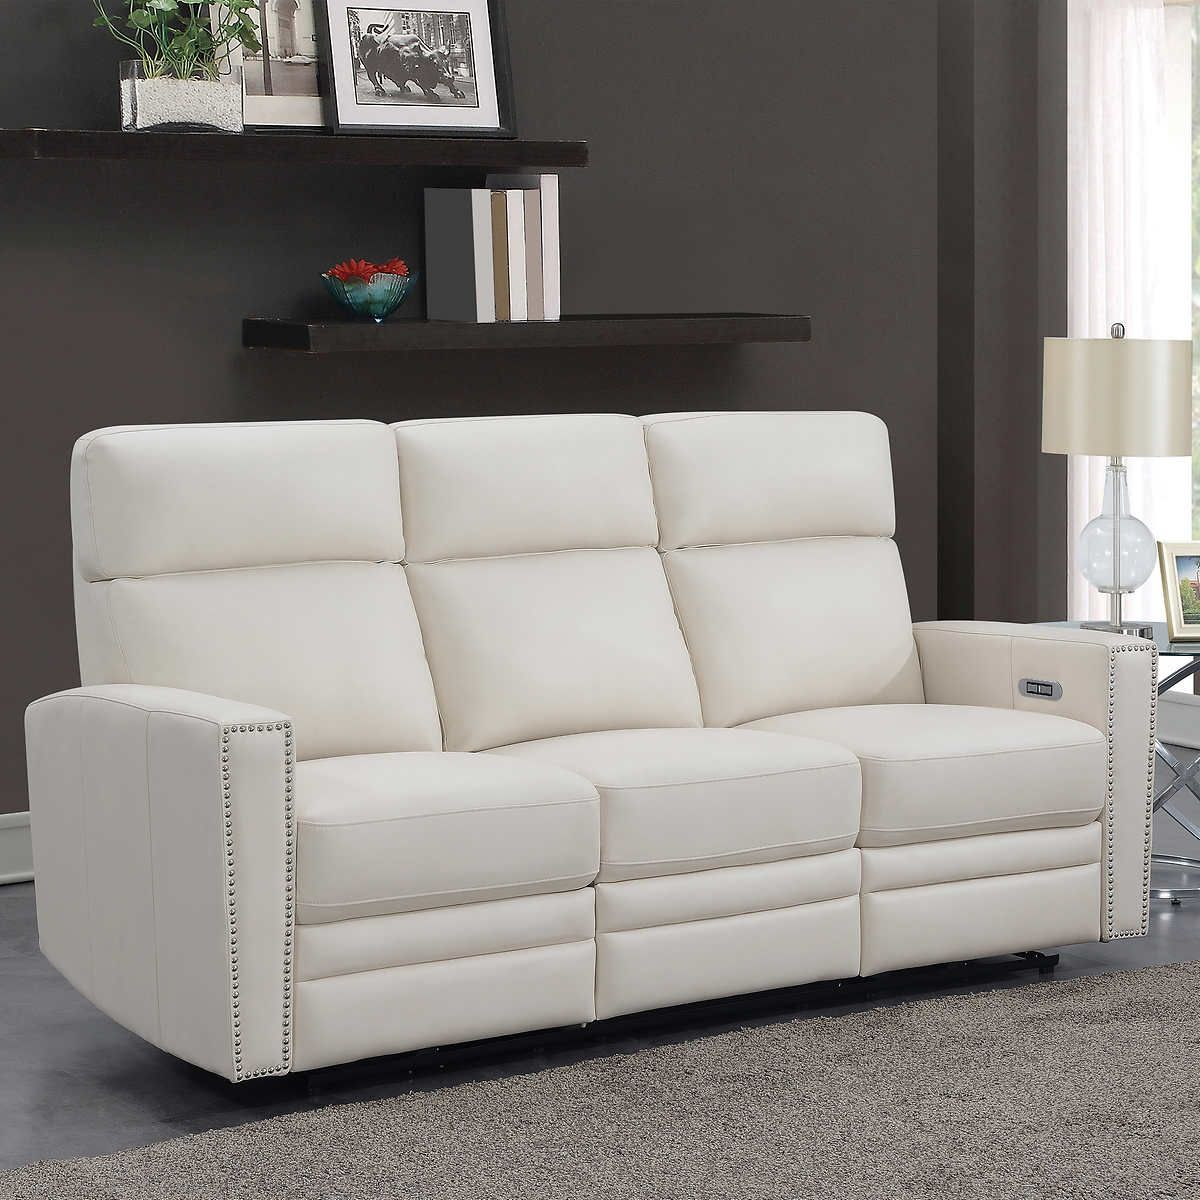 Altera Leather Power Reclining Sofa In 2020 Power Reclining Sofa Reclining Sofa Power Recliners